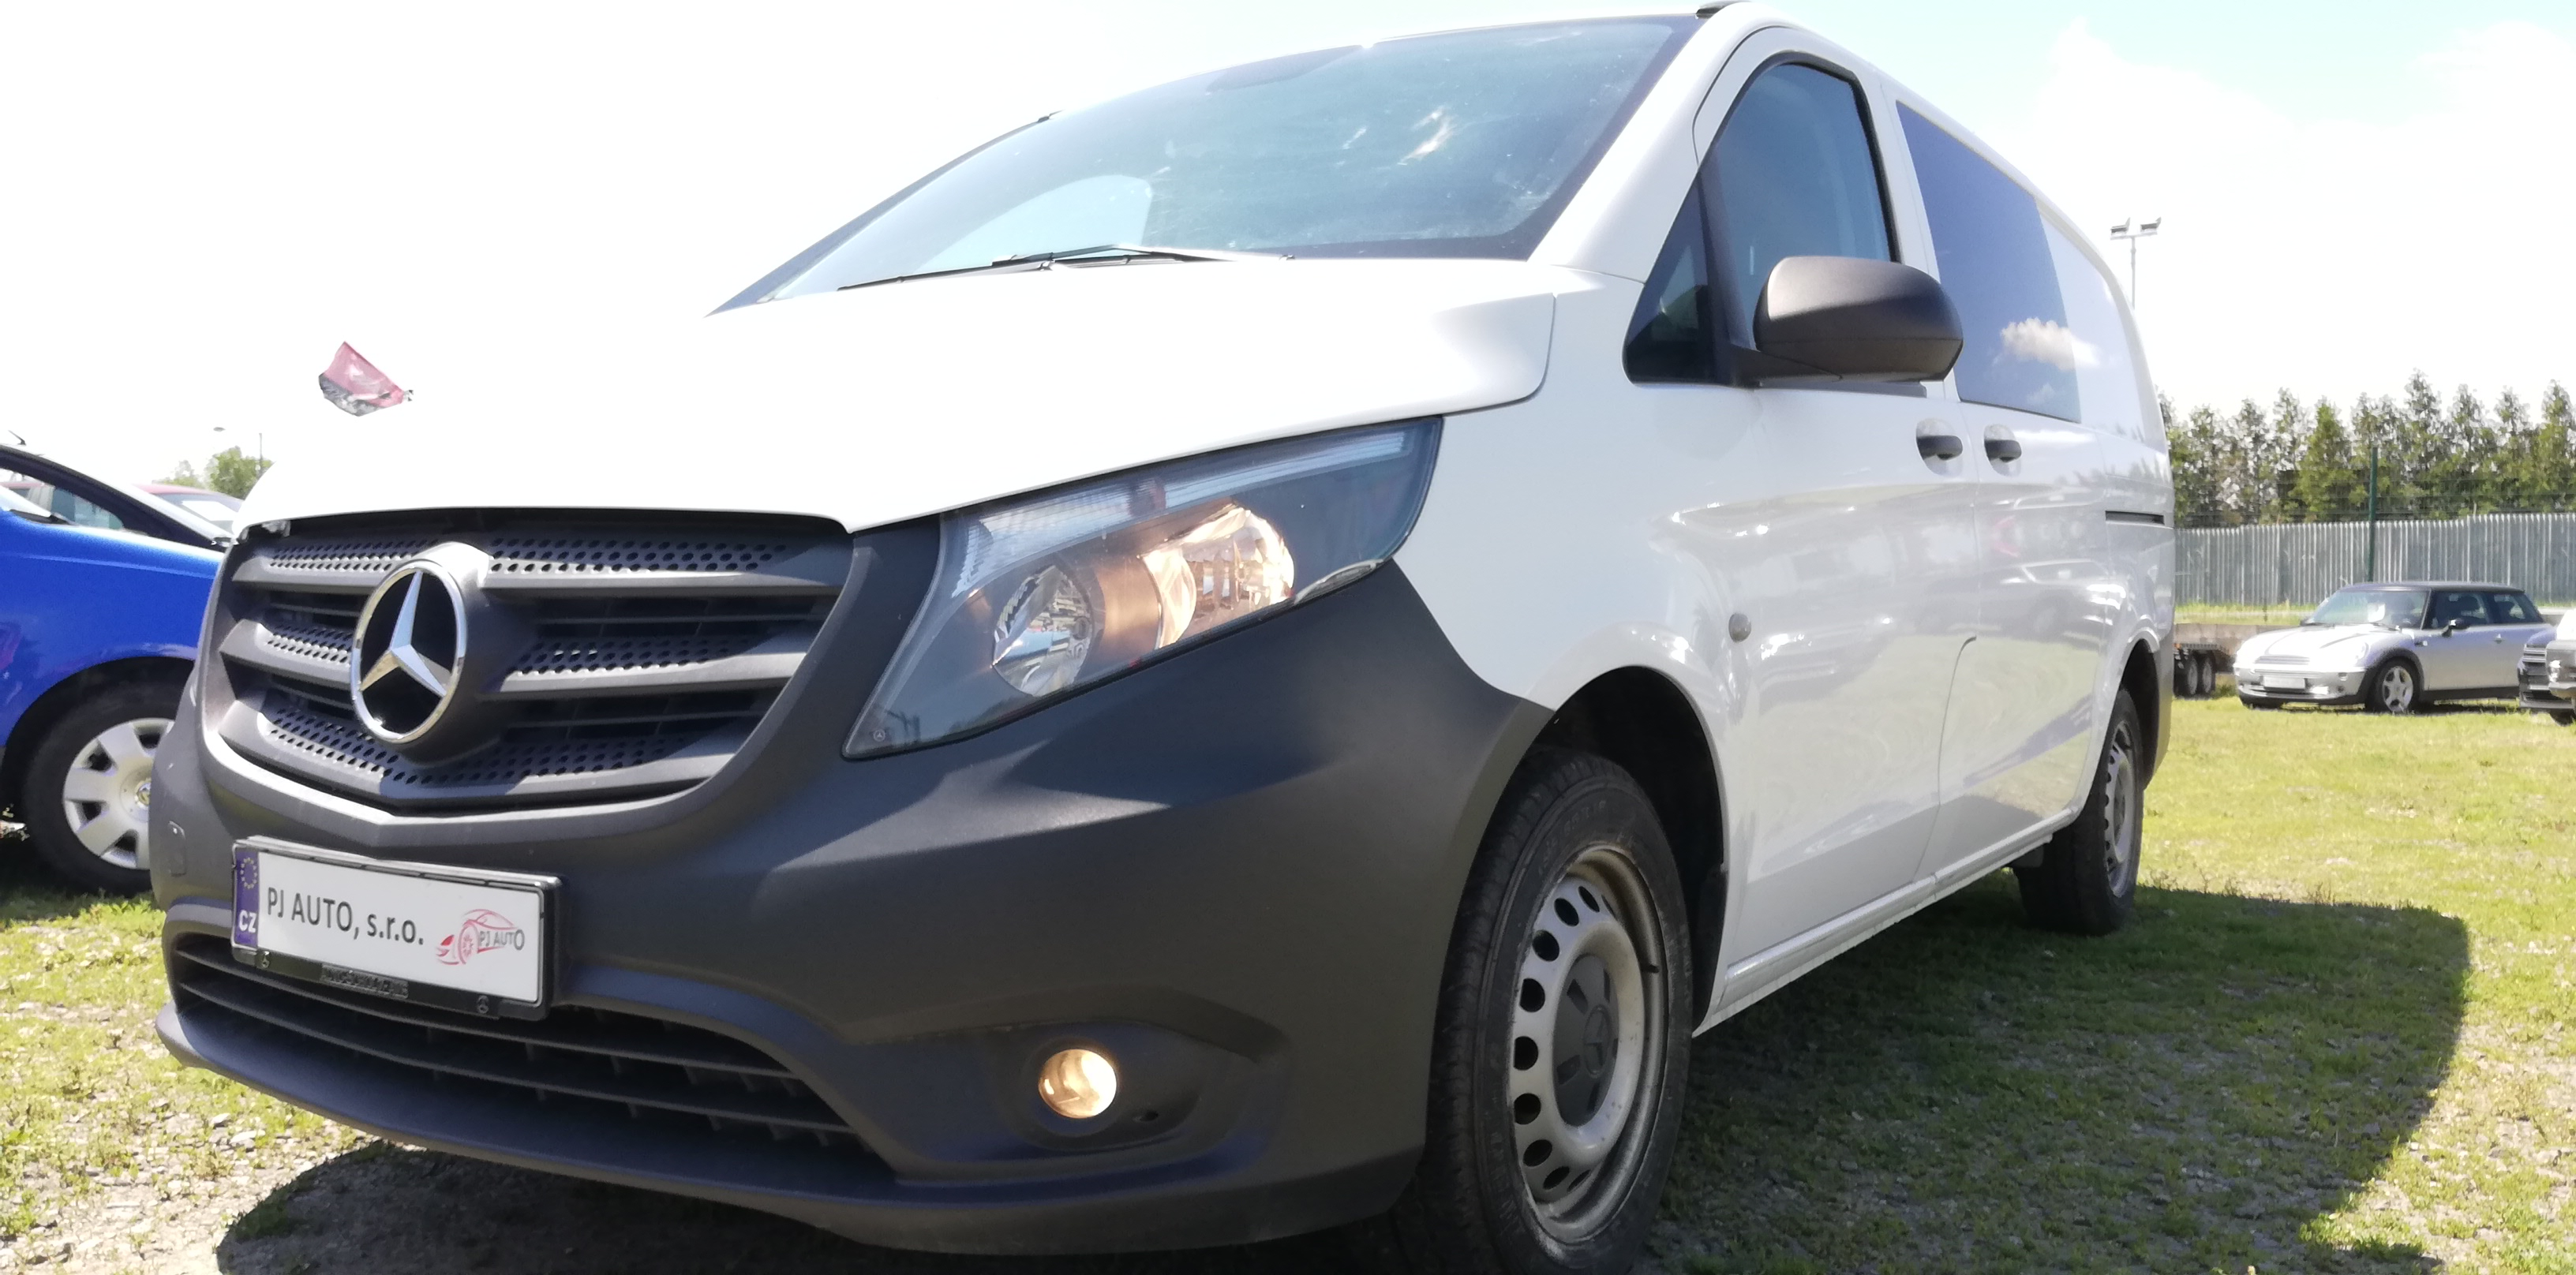 Mercedes-Benz Vito 114 CDi Mixto Long,Navi,Temp,Taž,1maj,DPH